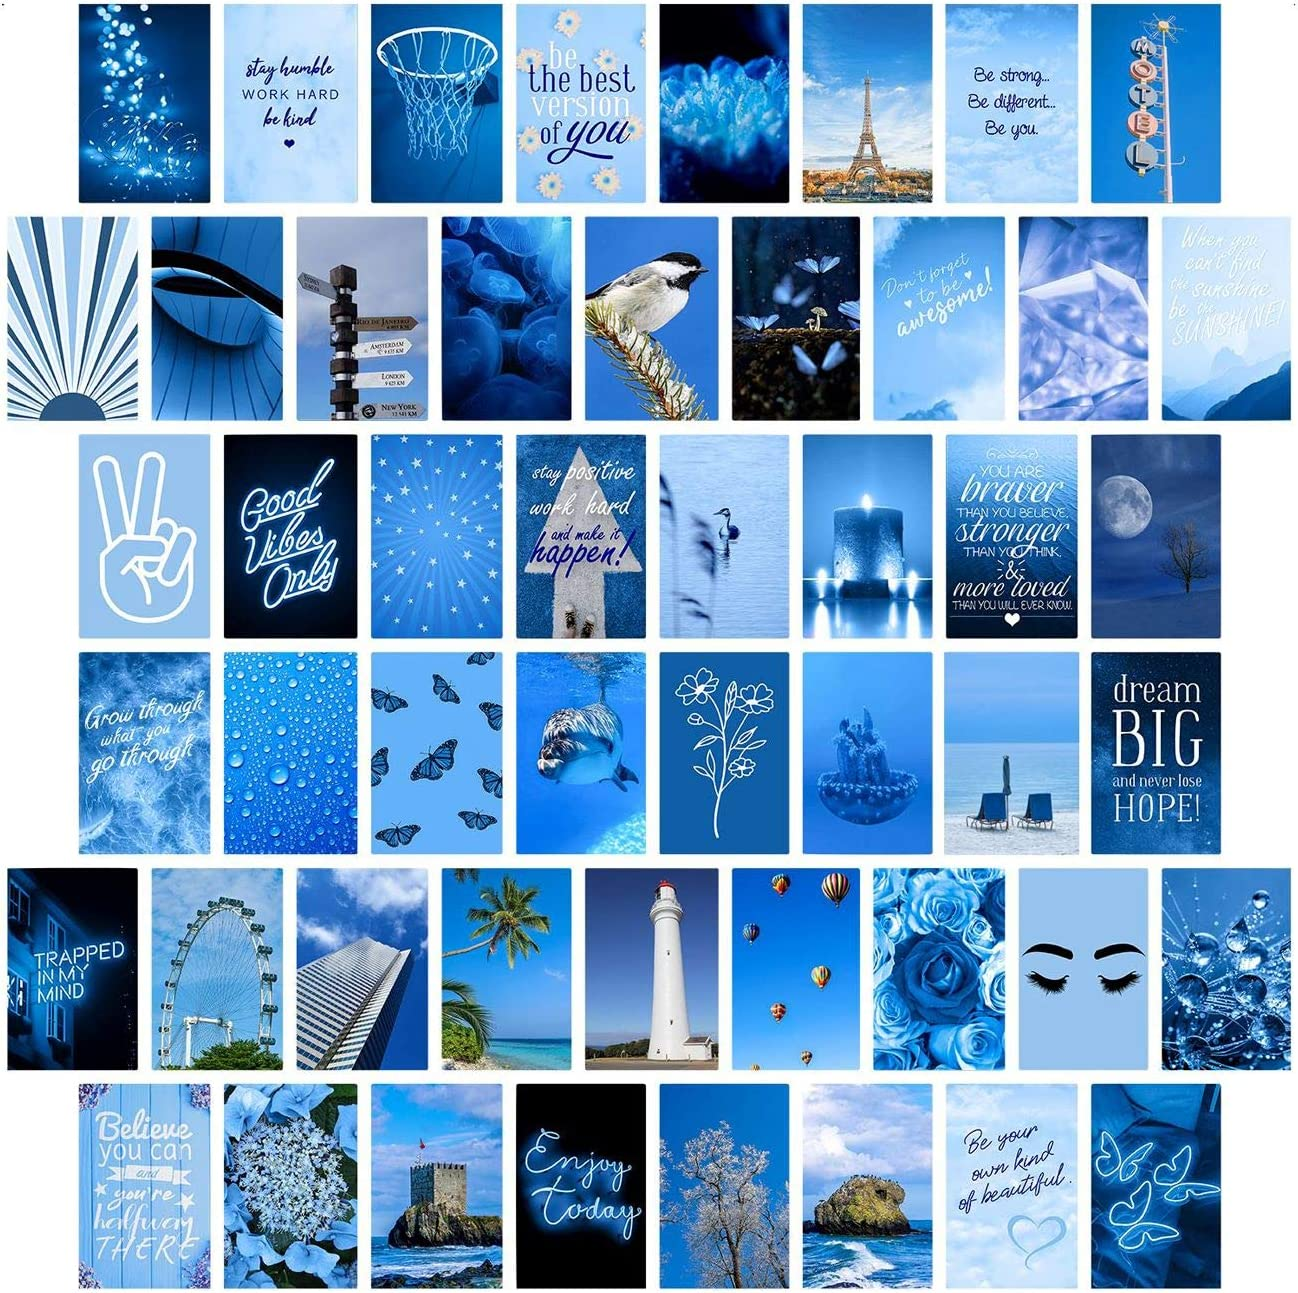 Blue Wall Collage Kit Aesthetic Pictures, Collage Kit for Wall Aesthetic, Aesthetic Pictures for Wall Collage, Room Decor for Teen Girls, Wall Collage Kit, Blue Collage Kit, 50pcs 4x6 inch